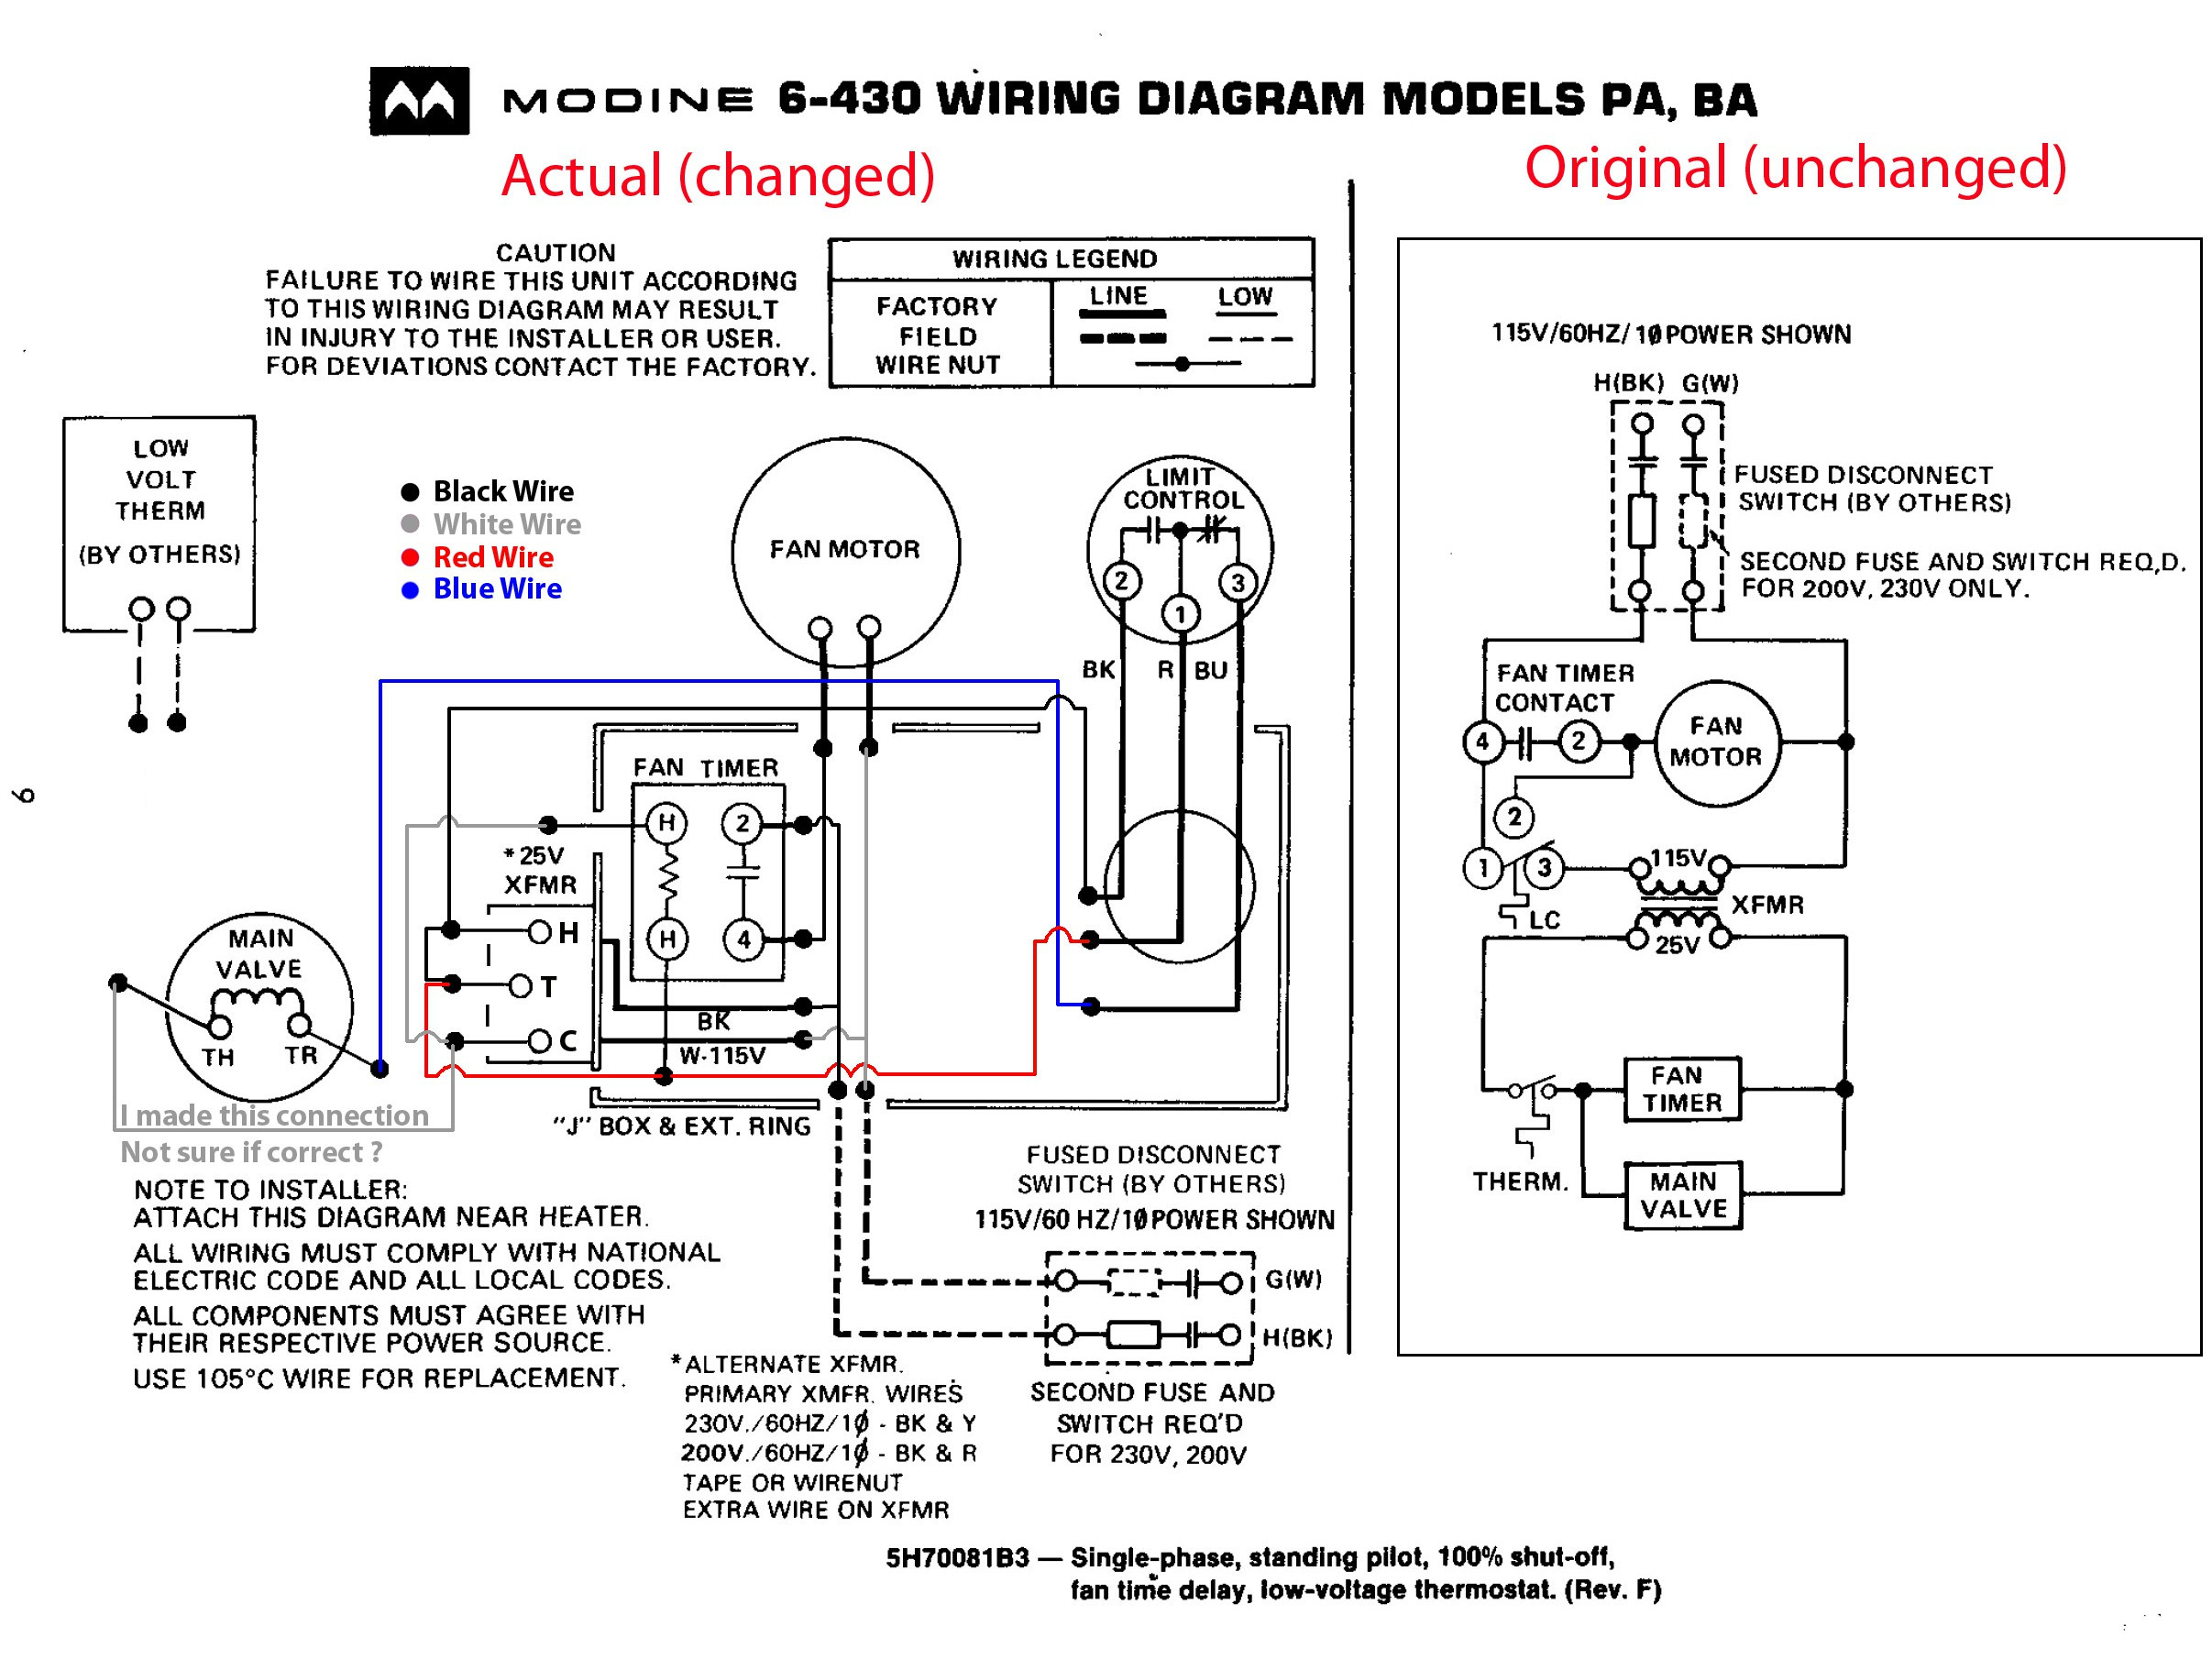 modine gas heater wiring diagram Collection-modine gas heater wiring diagram wire center u2022 rh insurapro co 9-k